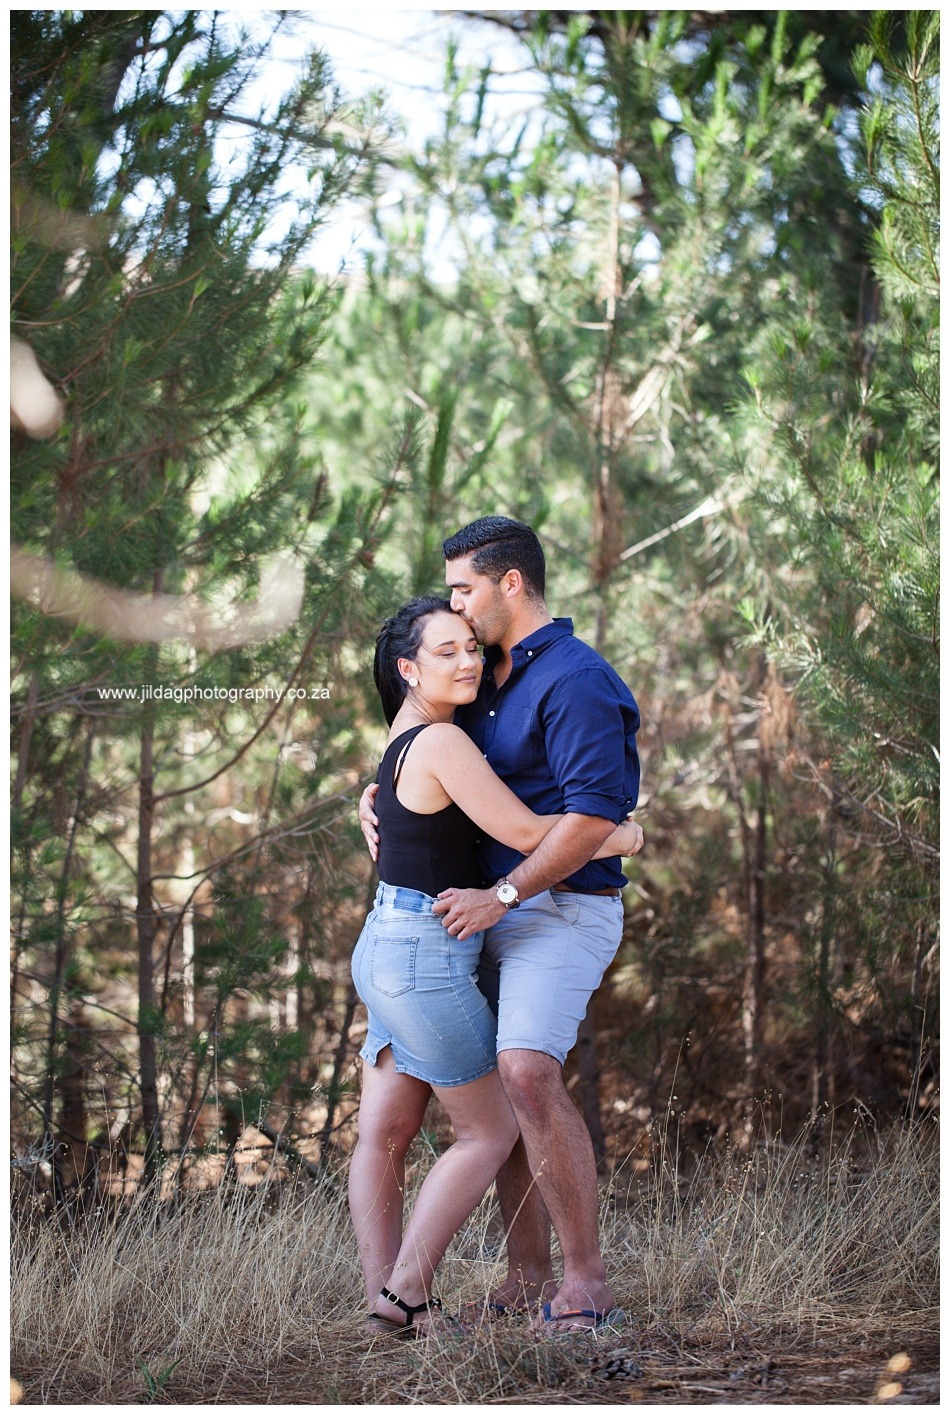 Daniel and Blana proposal at Jordan Winery